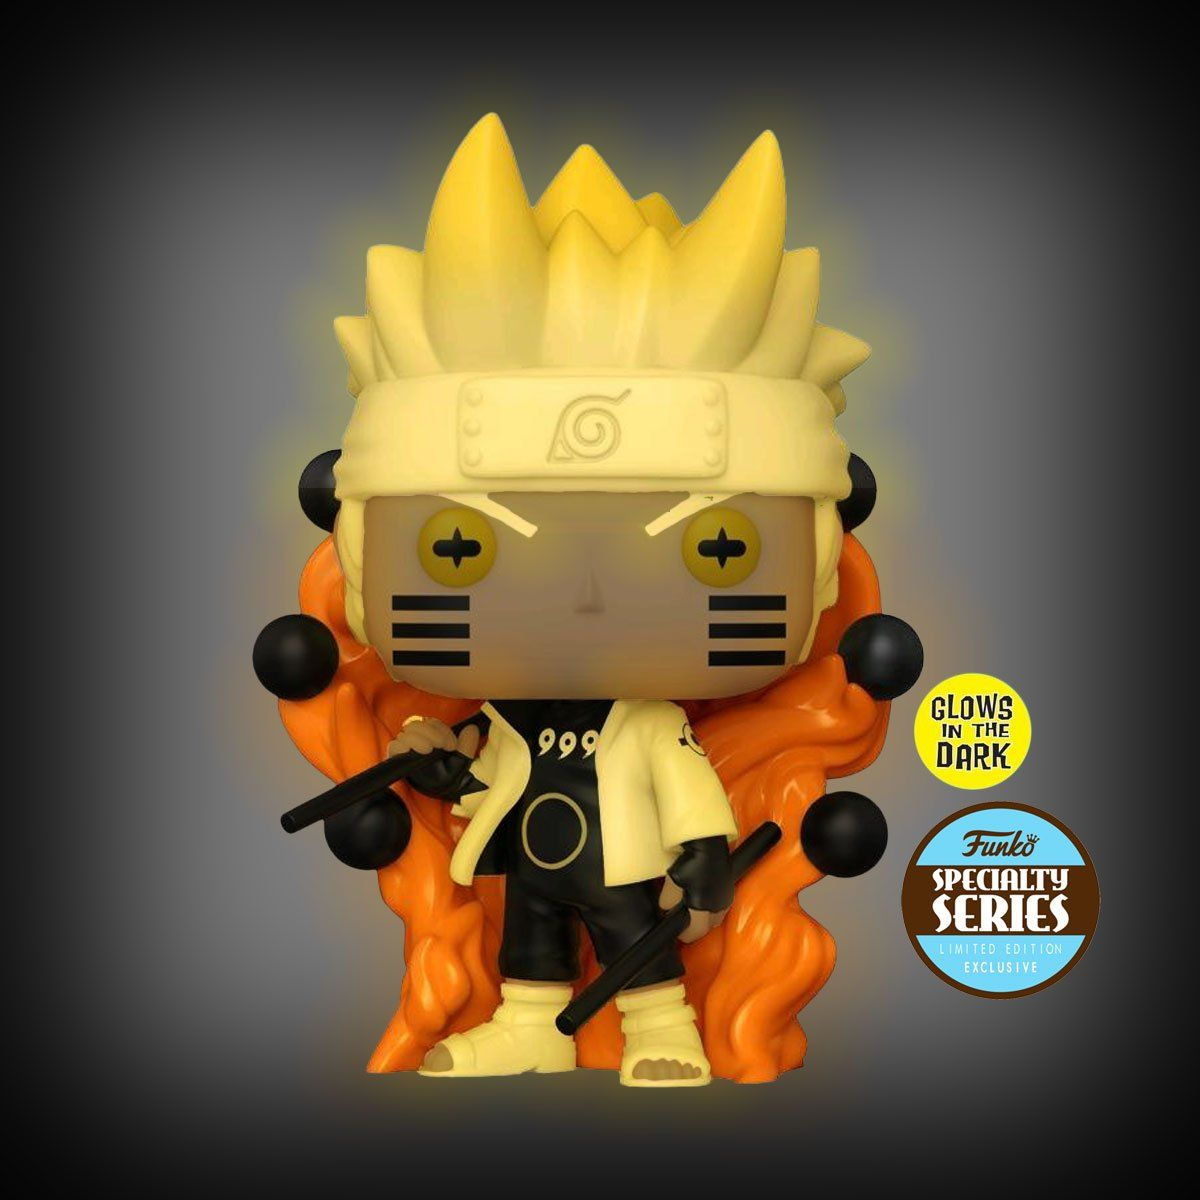 Naruto 6-Path Sage GITD Specialty Series Naruto Funko POP! Animation [PRE-ORDER FOR MAR 2021* DELIVERY] POP! Funko